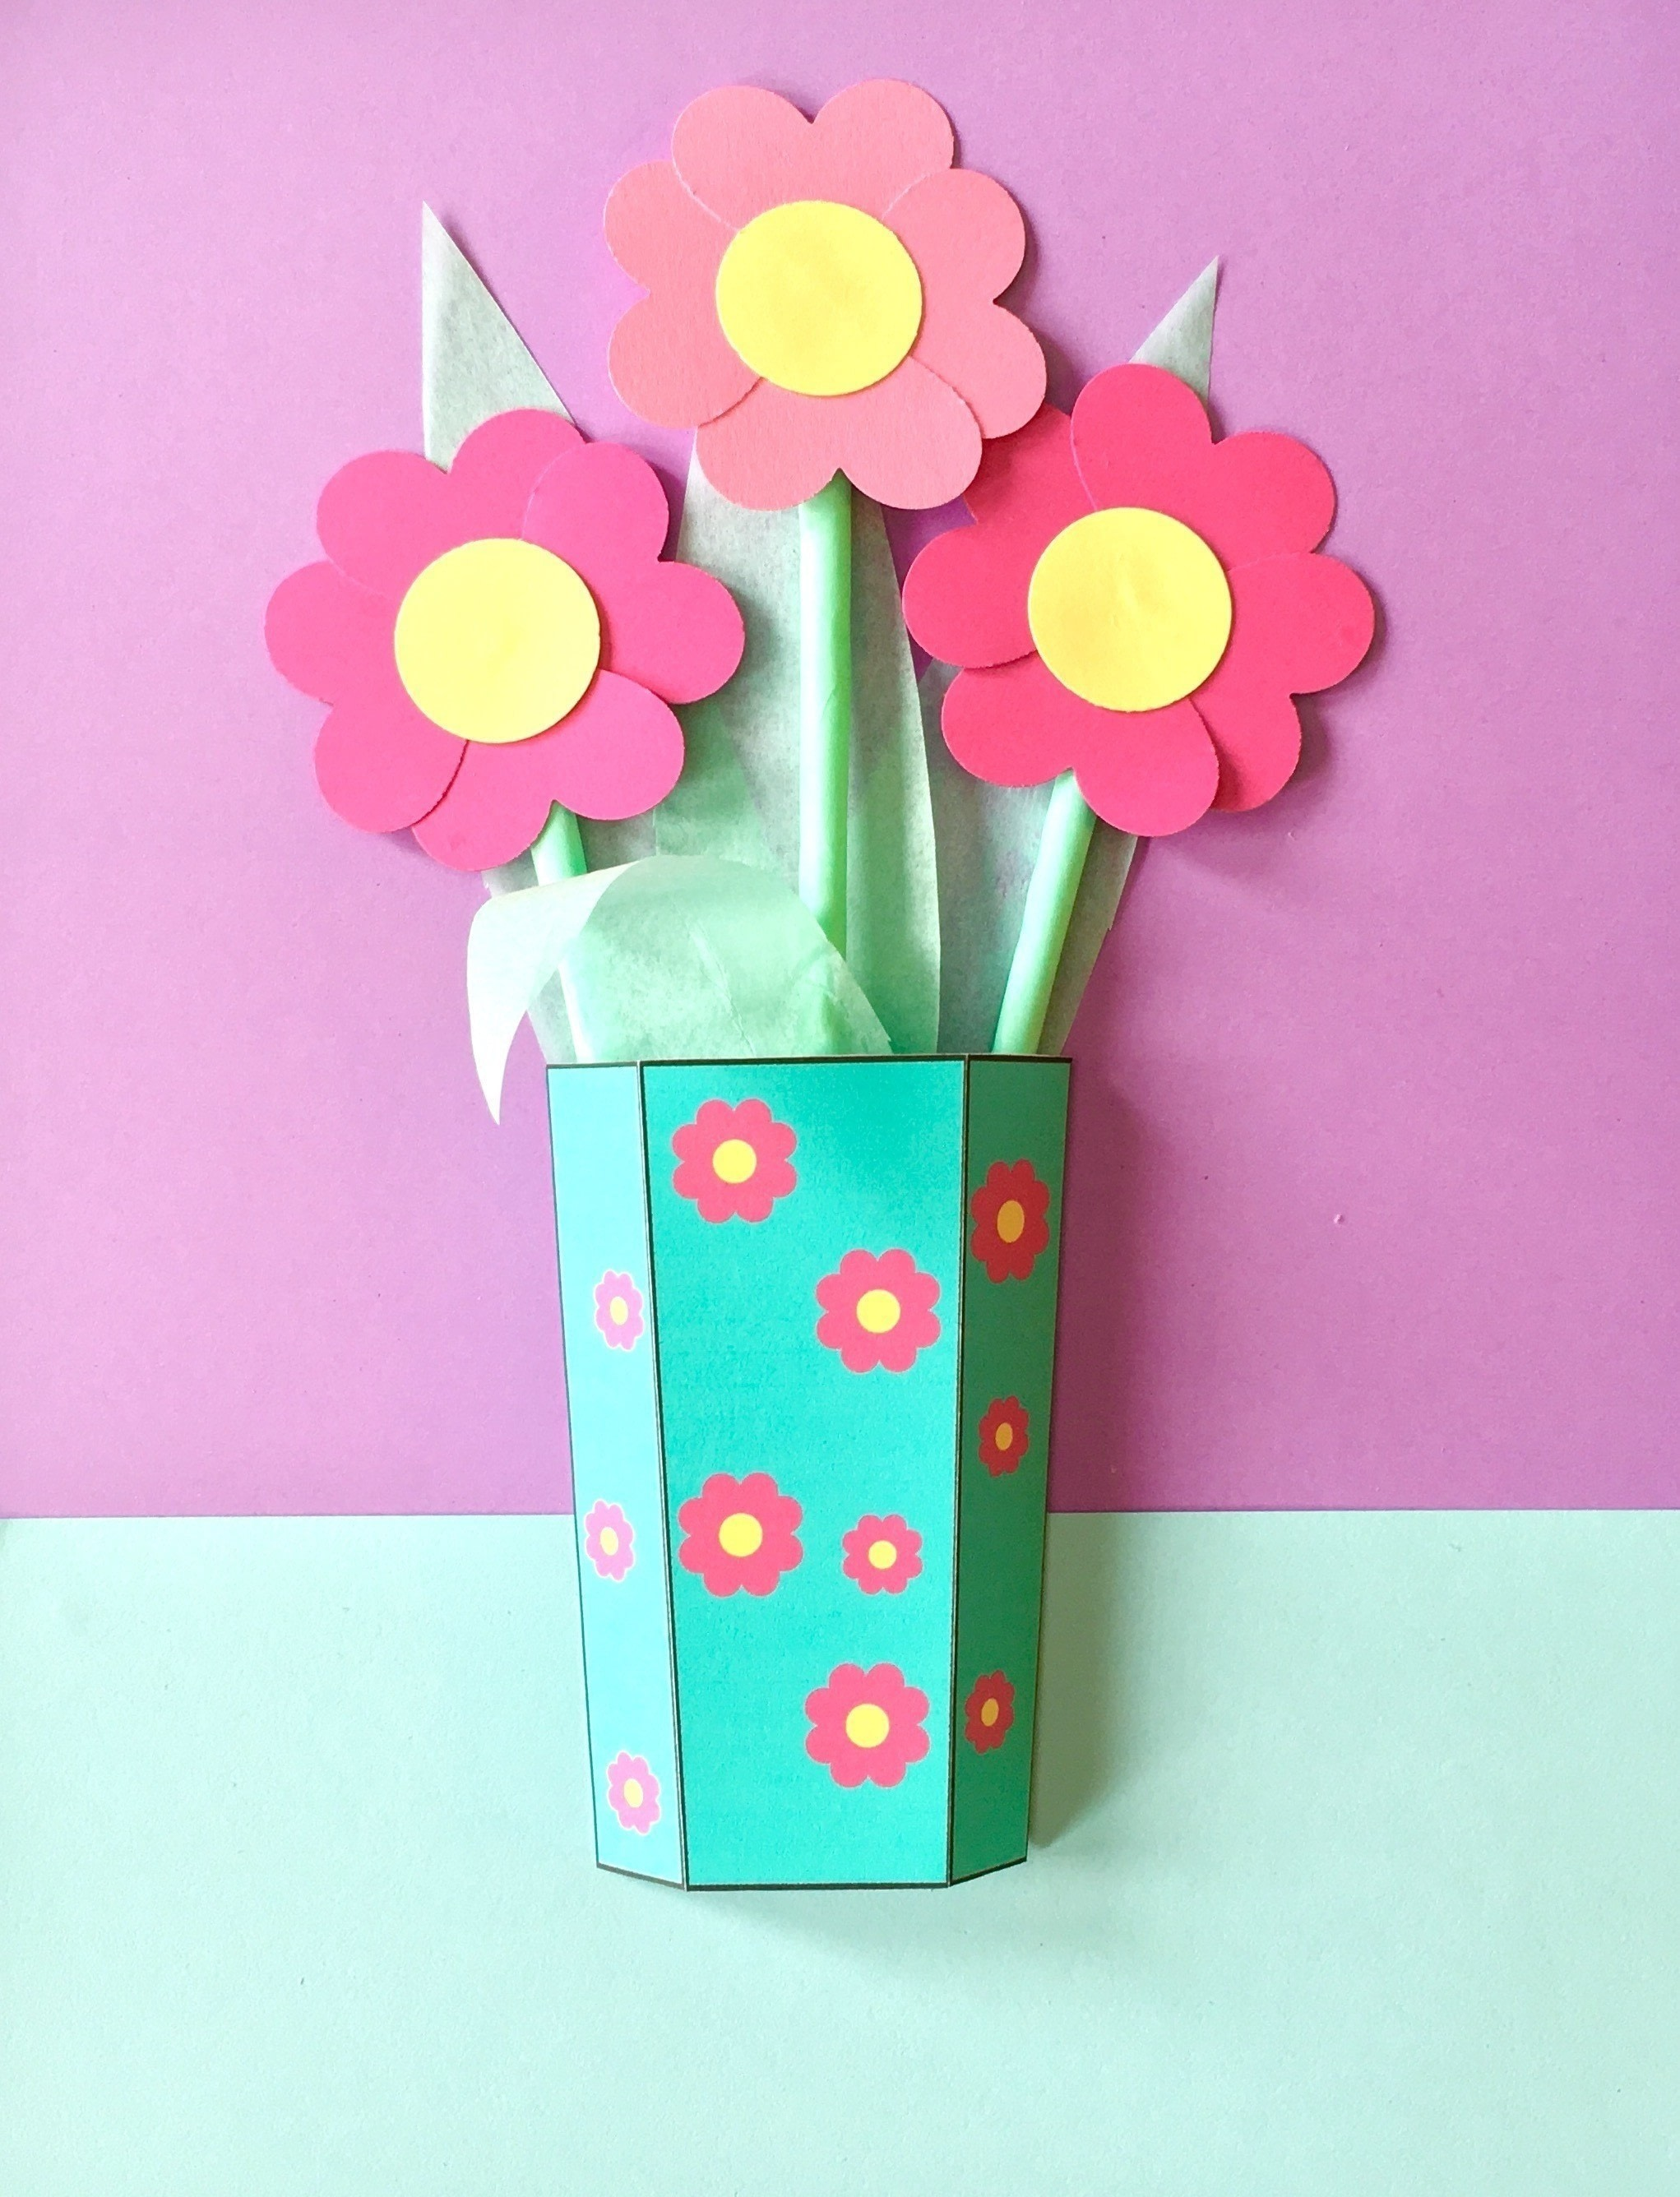 Free Tutorial With Pictures On How To Make A 3D Greetings Card In Under 30